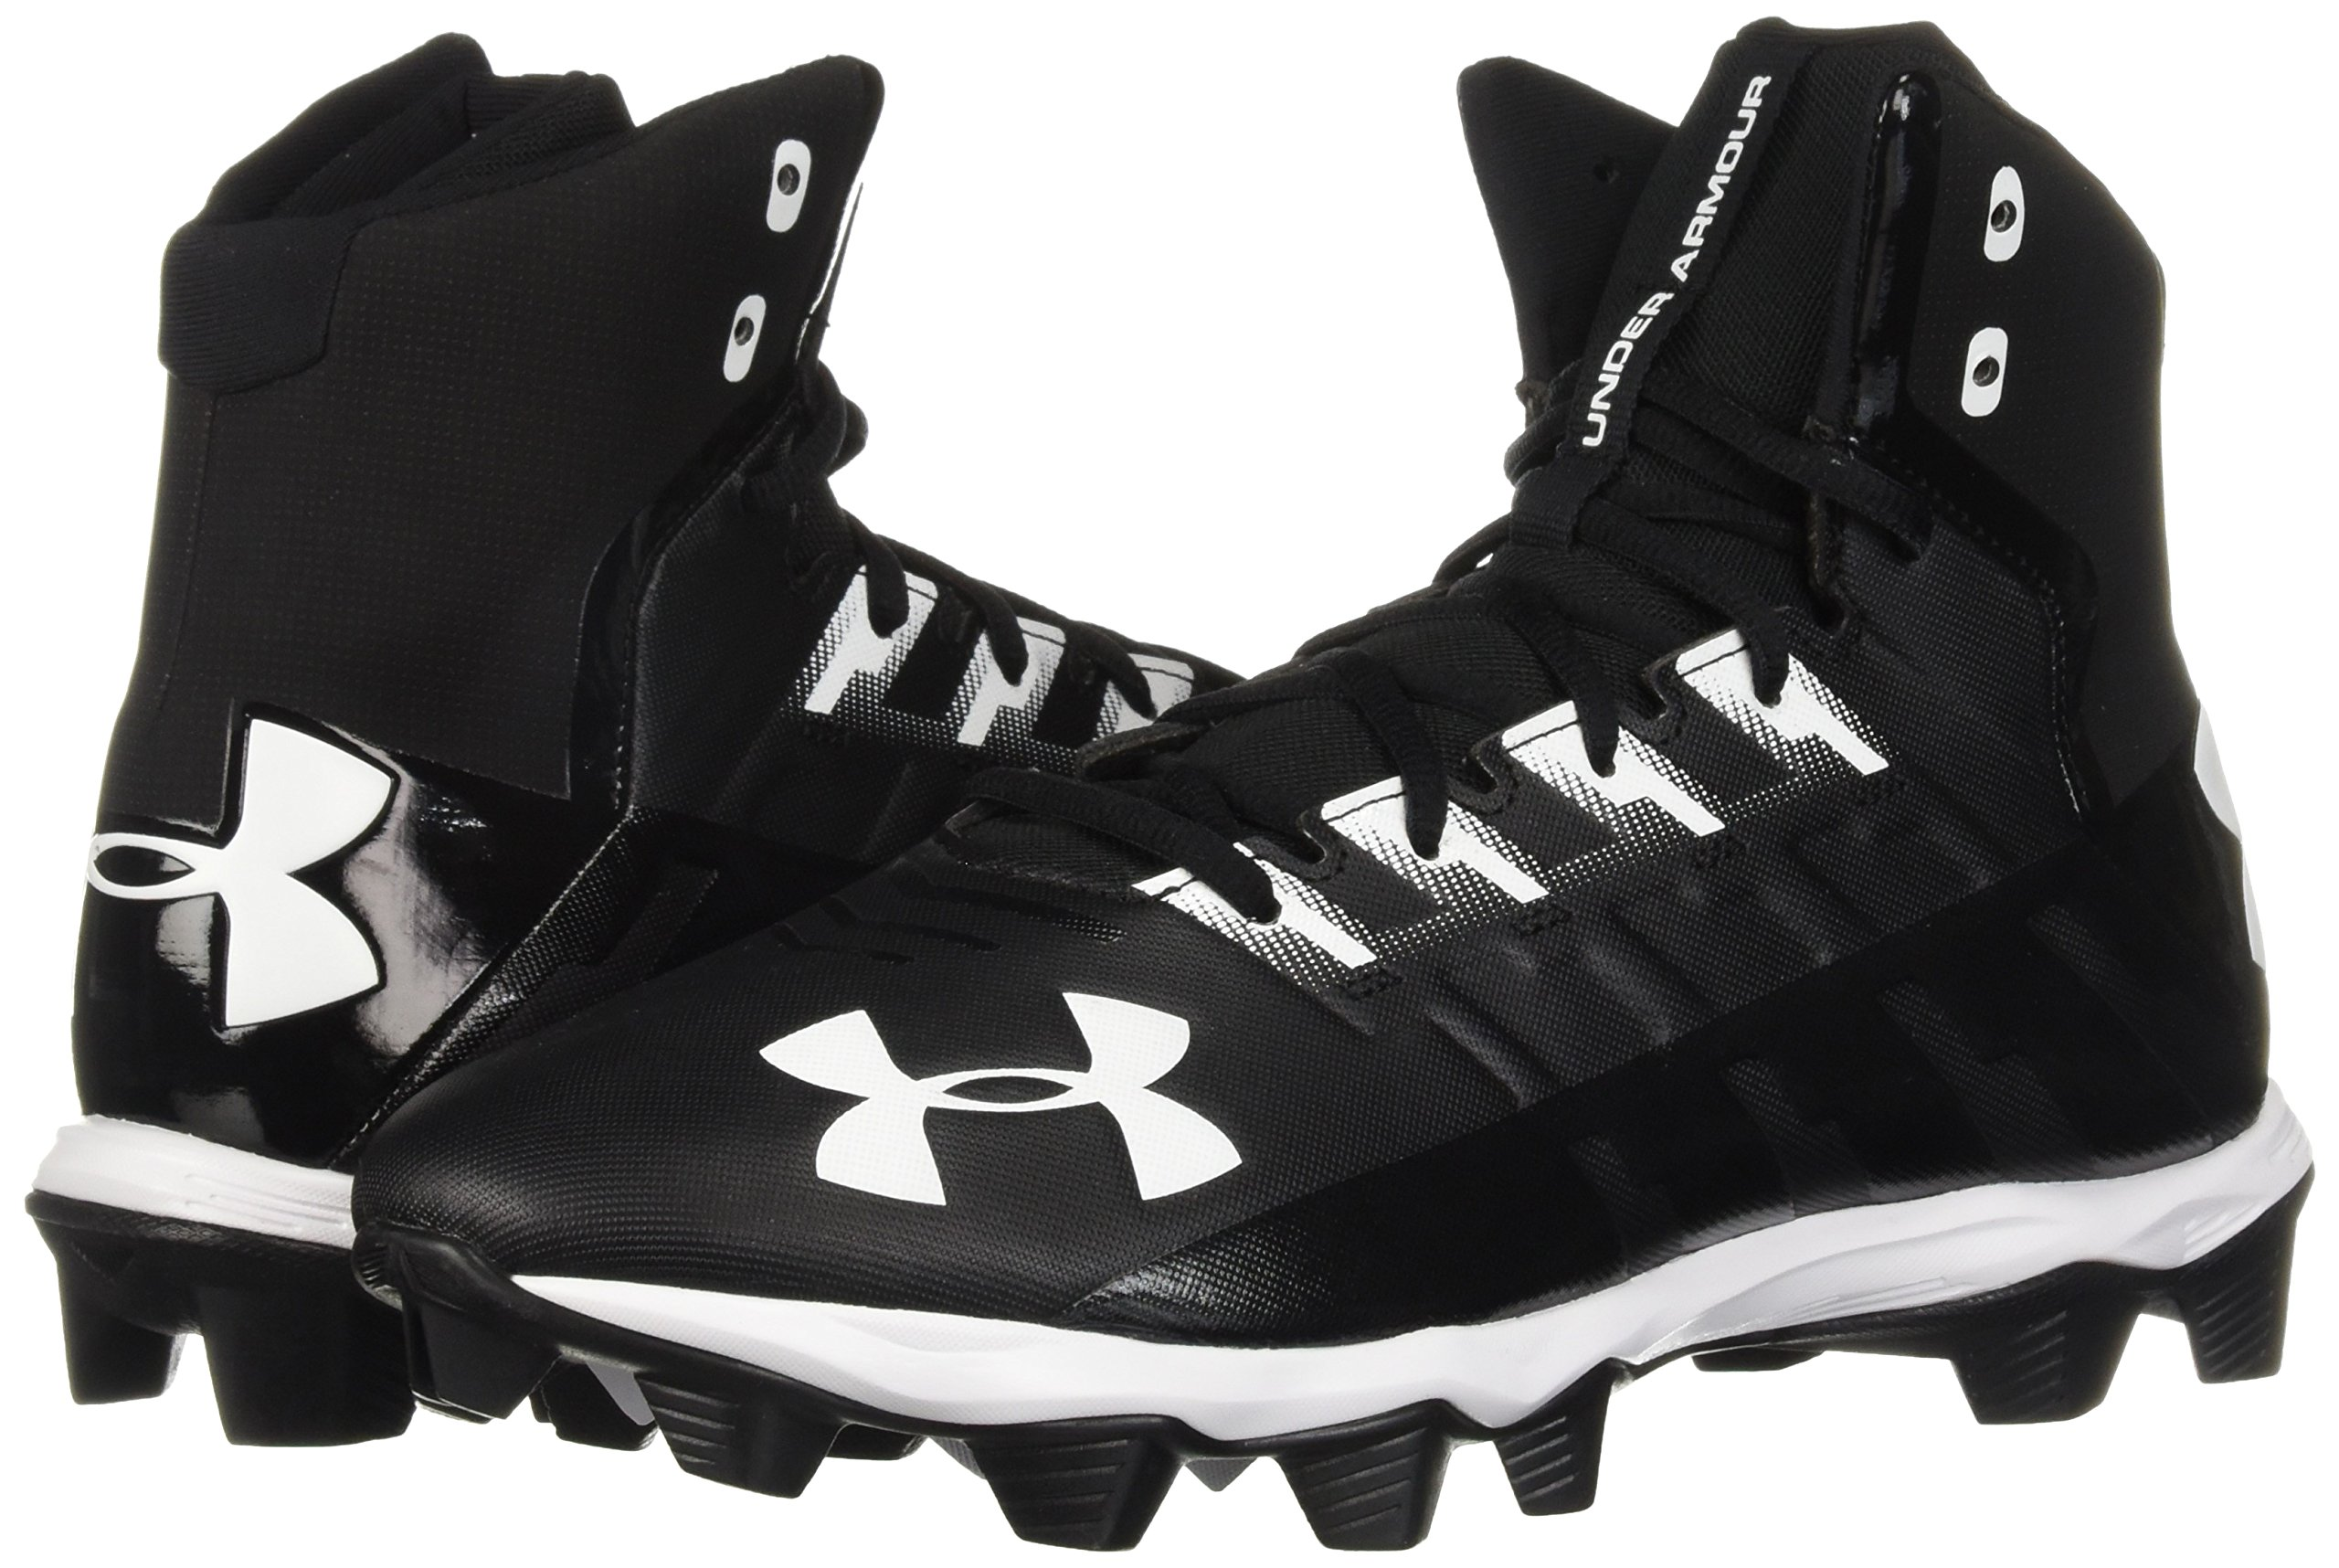 Under Armour Men's Renegade RM Wide Football Shoe 002/Black, 11 W US by Under Armour (Image #5)